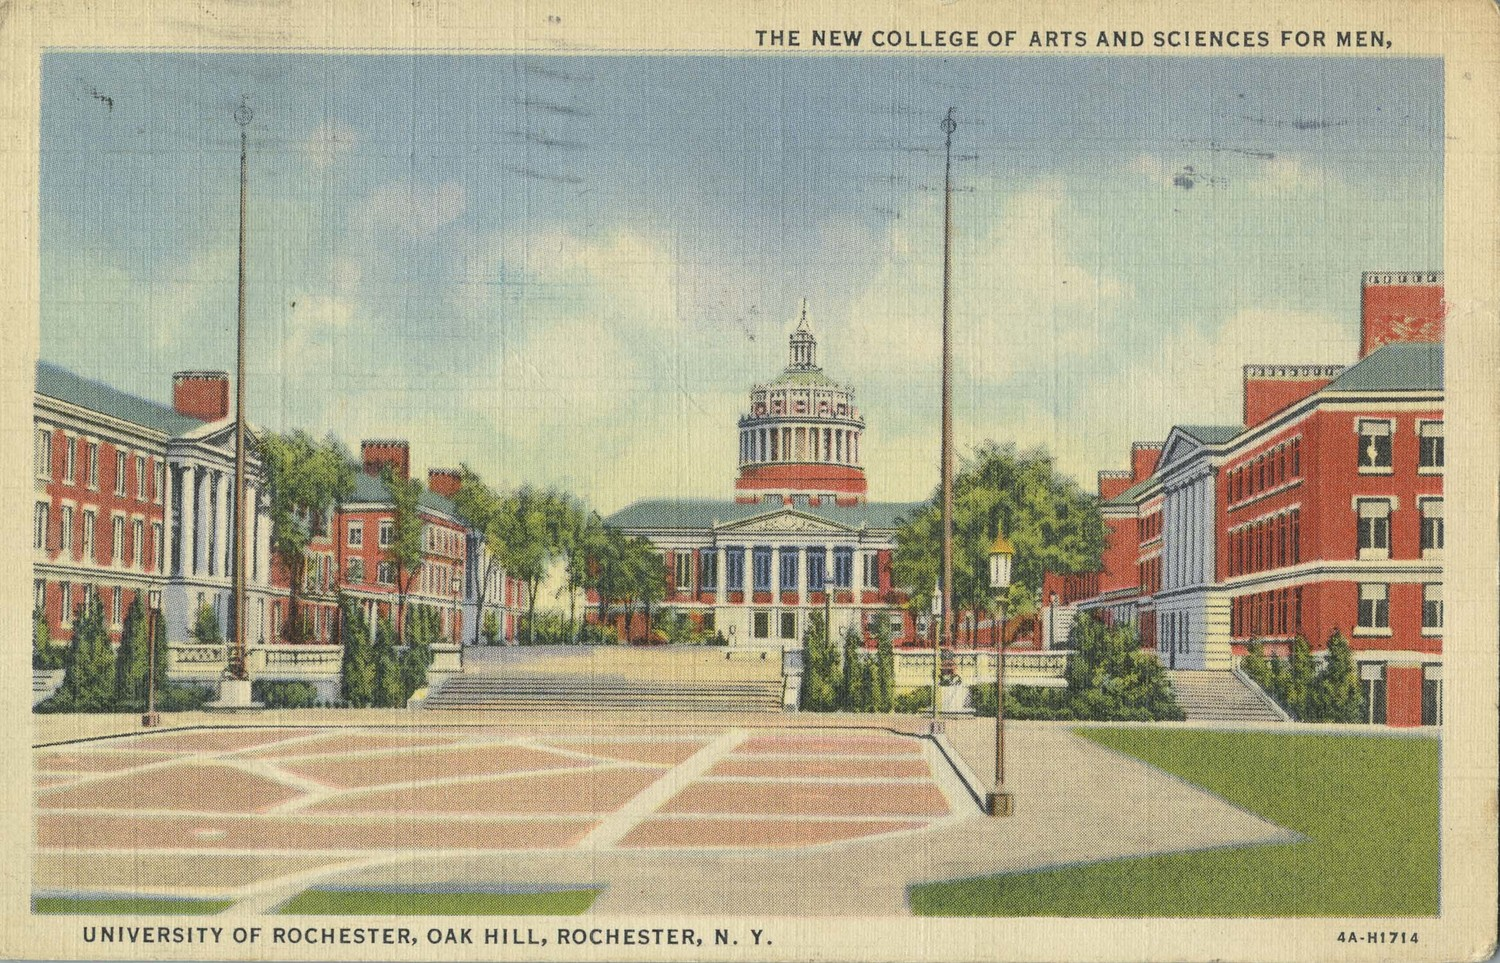 The New College of Arts and Sciences for Men, University of Rochester, Oak Hill, Rochester N.Y.